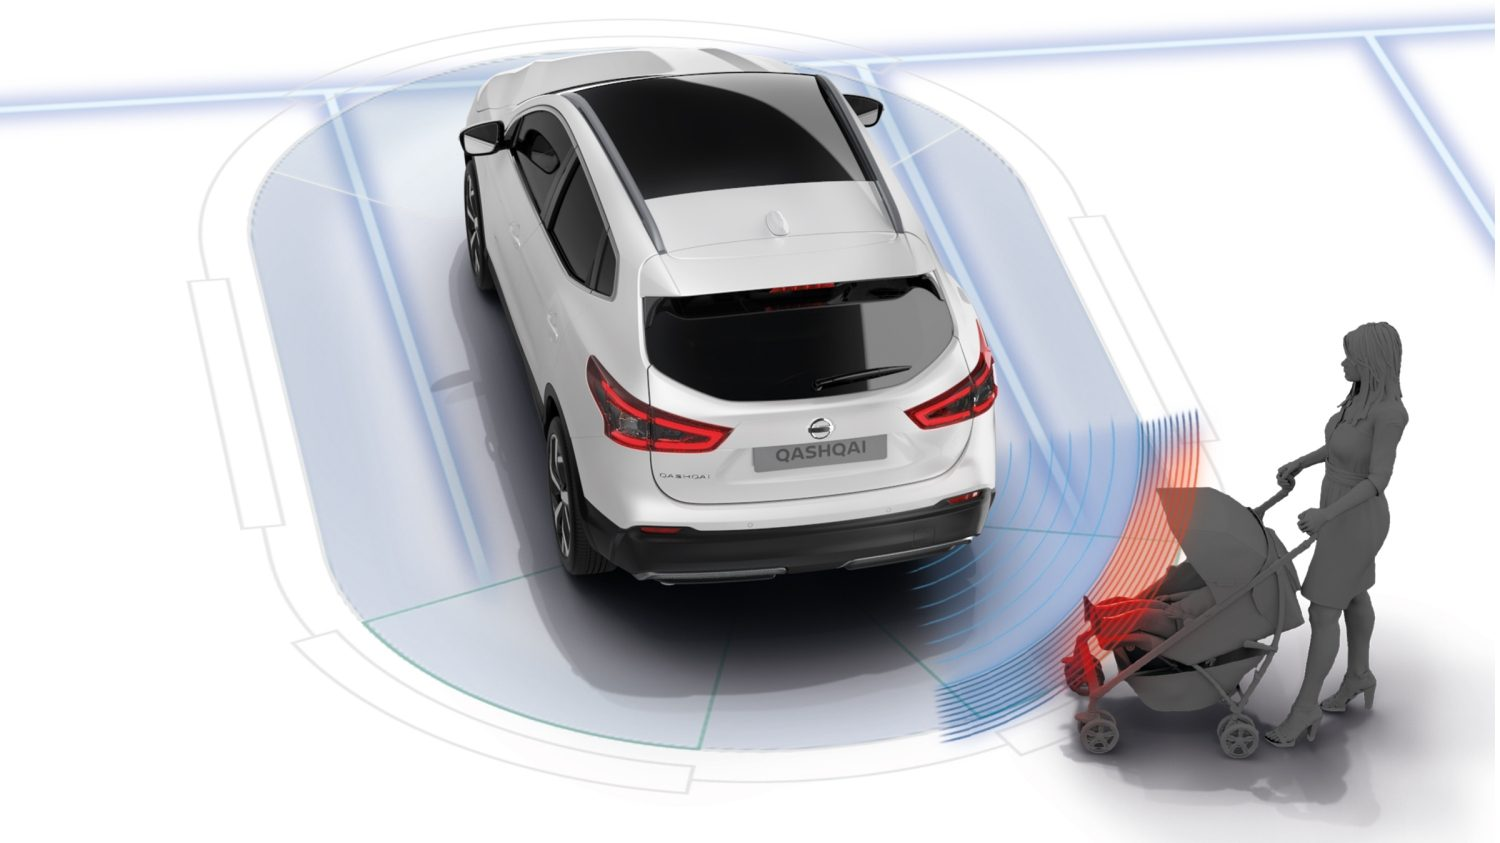 Qashqai Moving Object Detection illustration